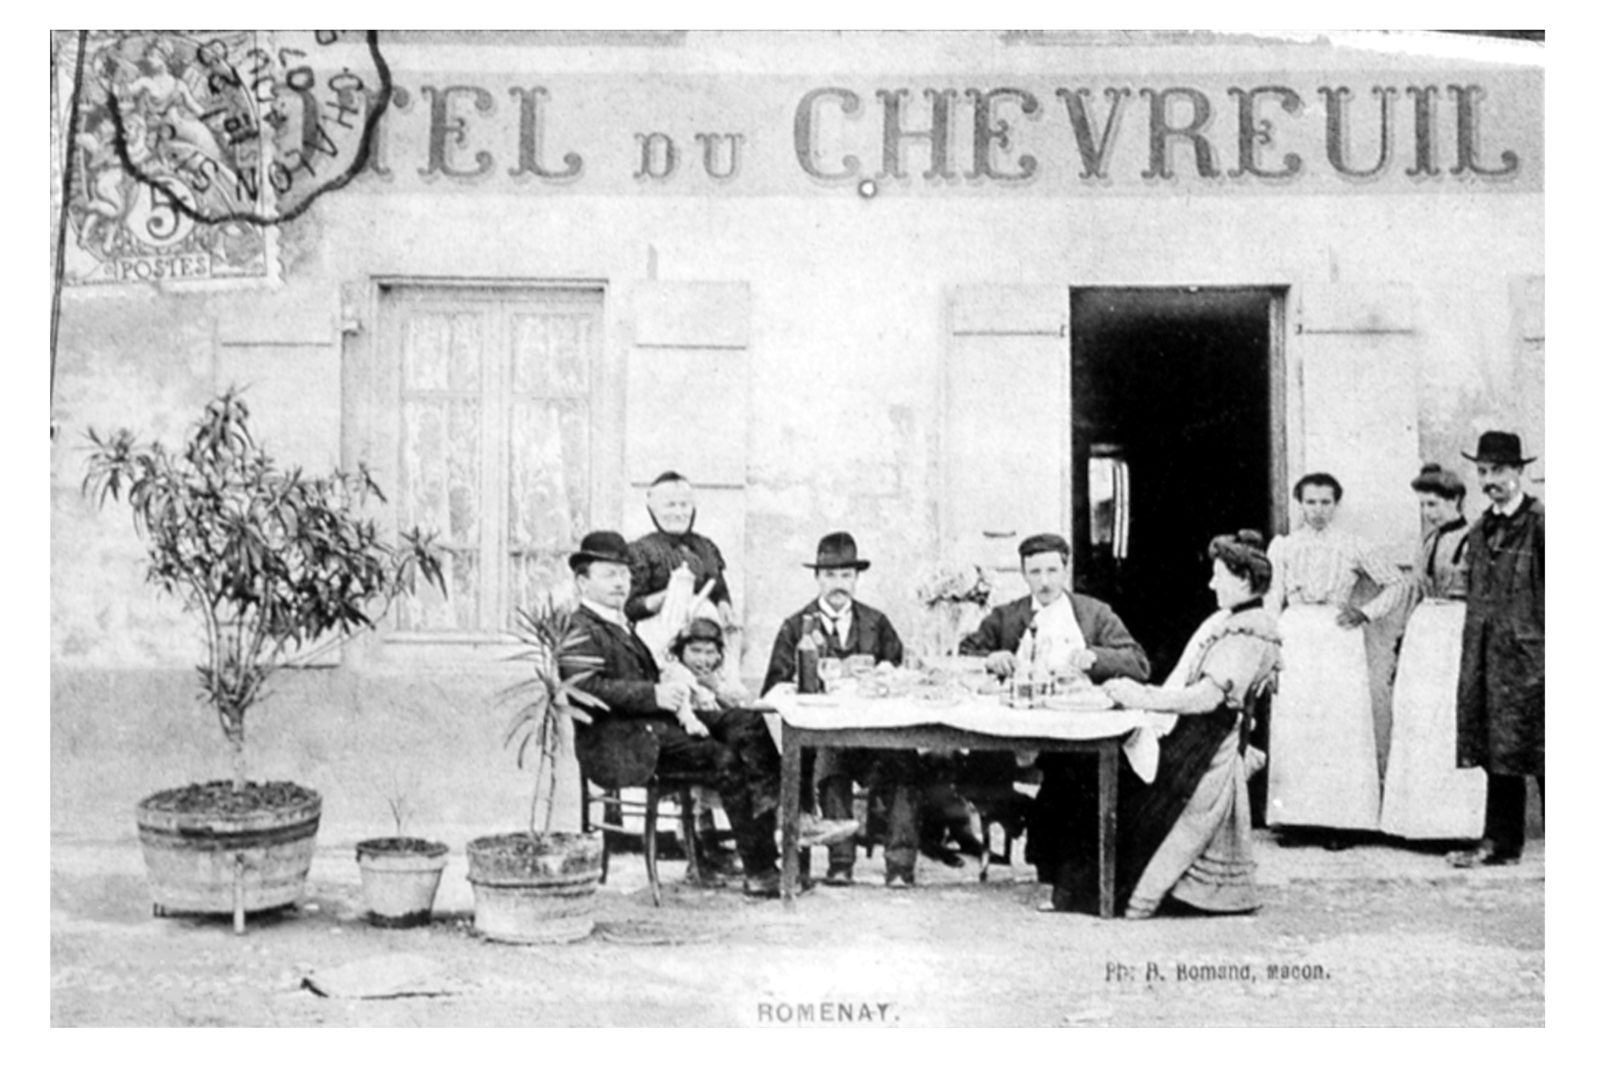 Hotel du Chevreuil Famille Page-Perret